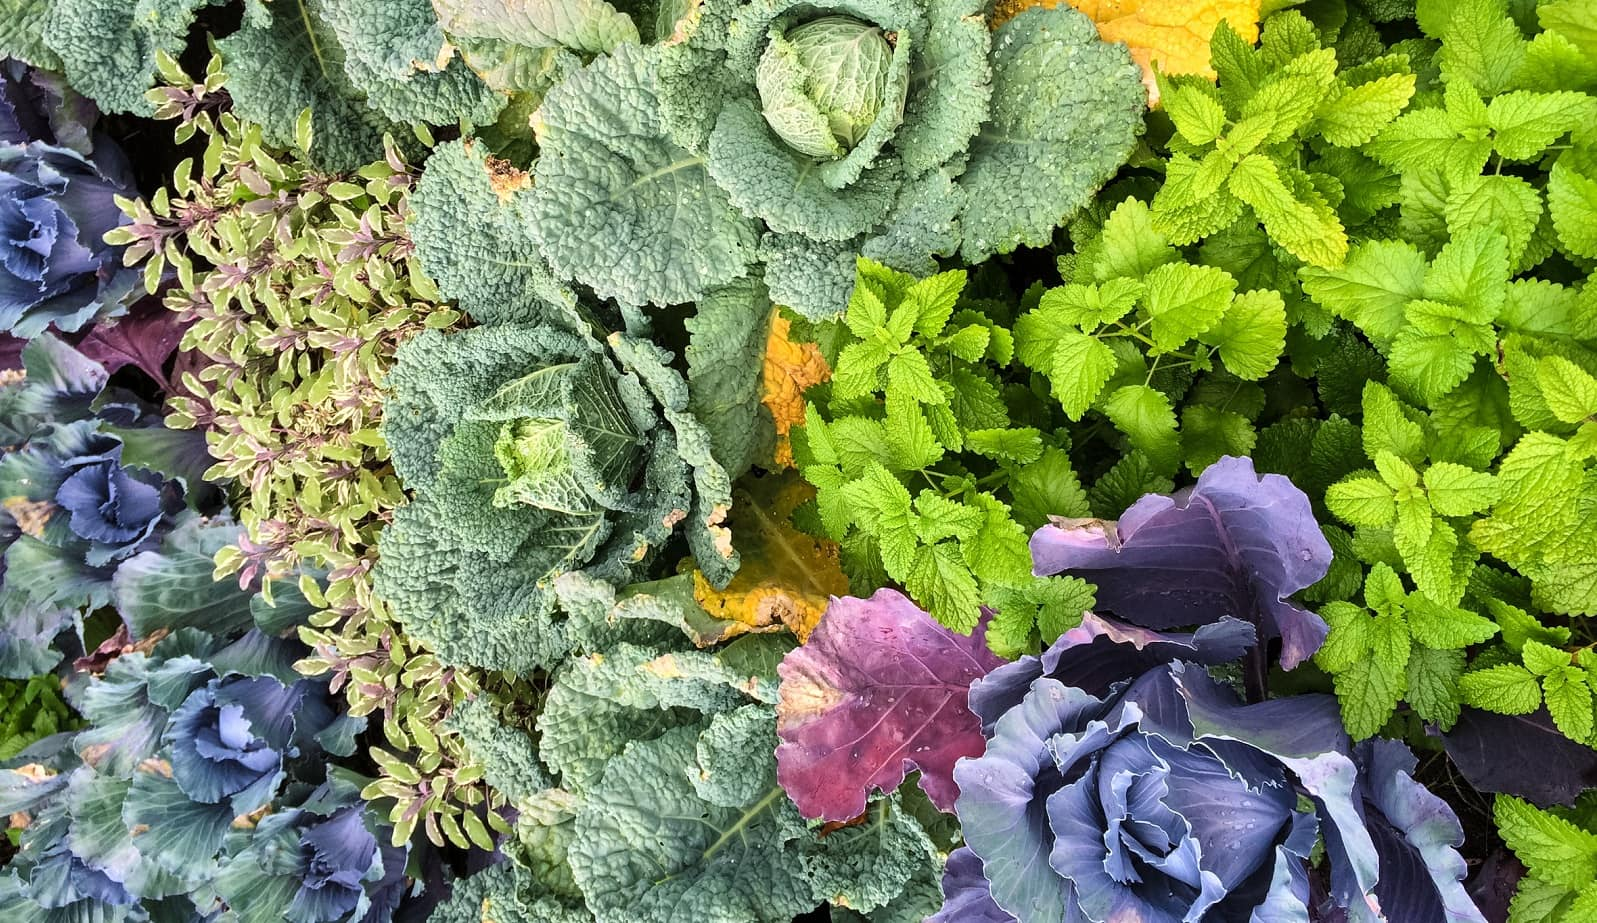 2019 Planting guide: How to build a vegetable garden